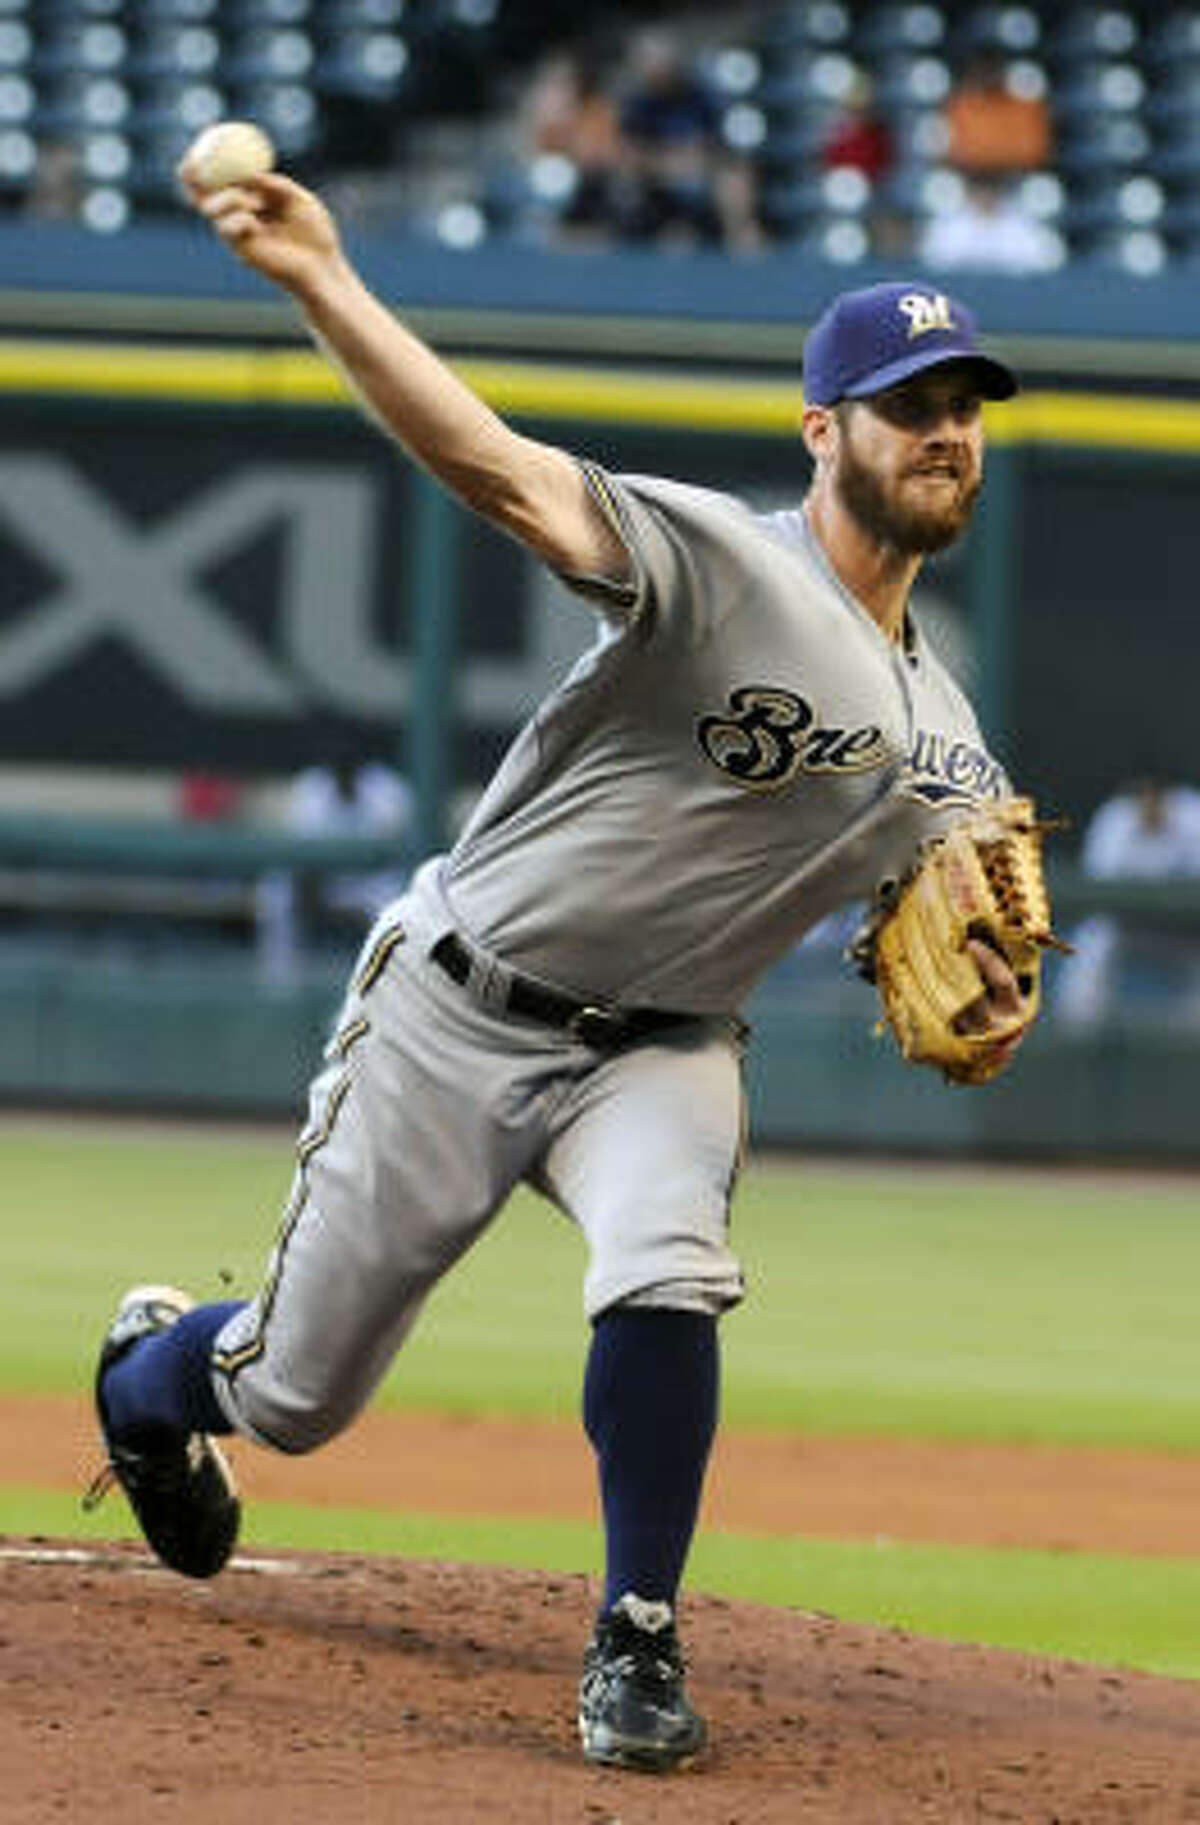 Milwaukee Brewers' Dave Bush delivers a pitch in the first inning.